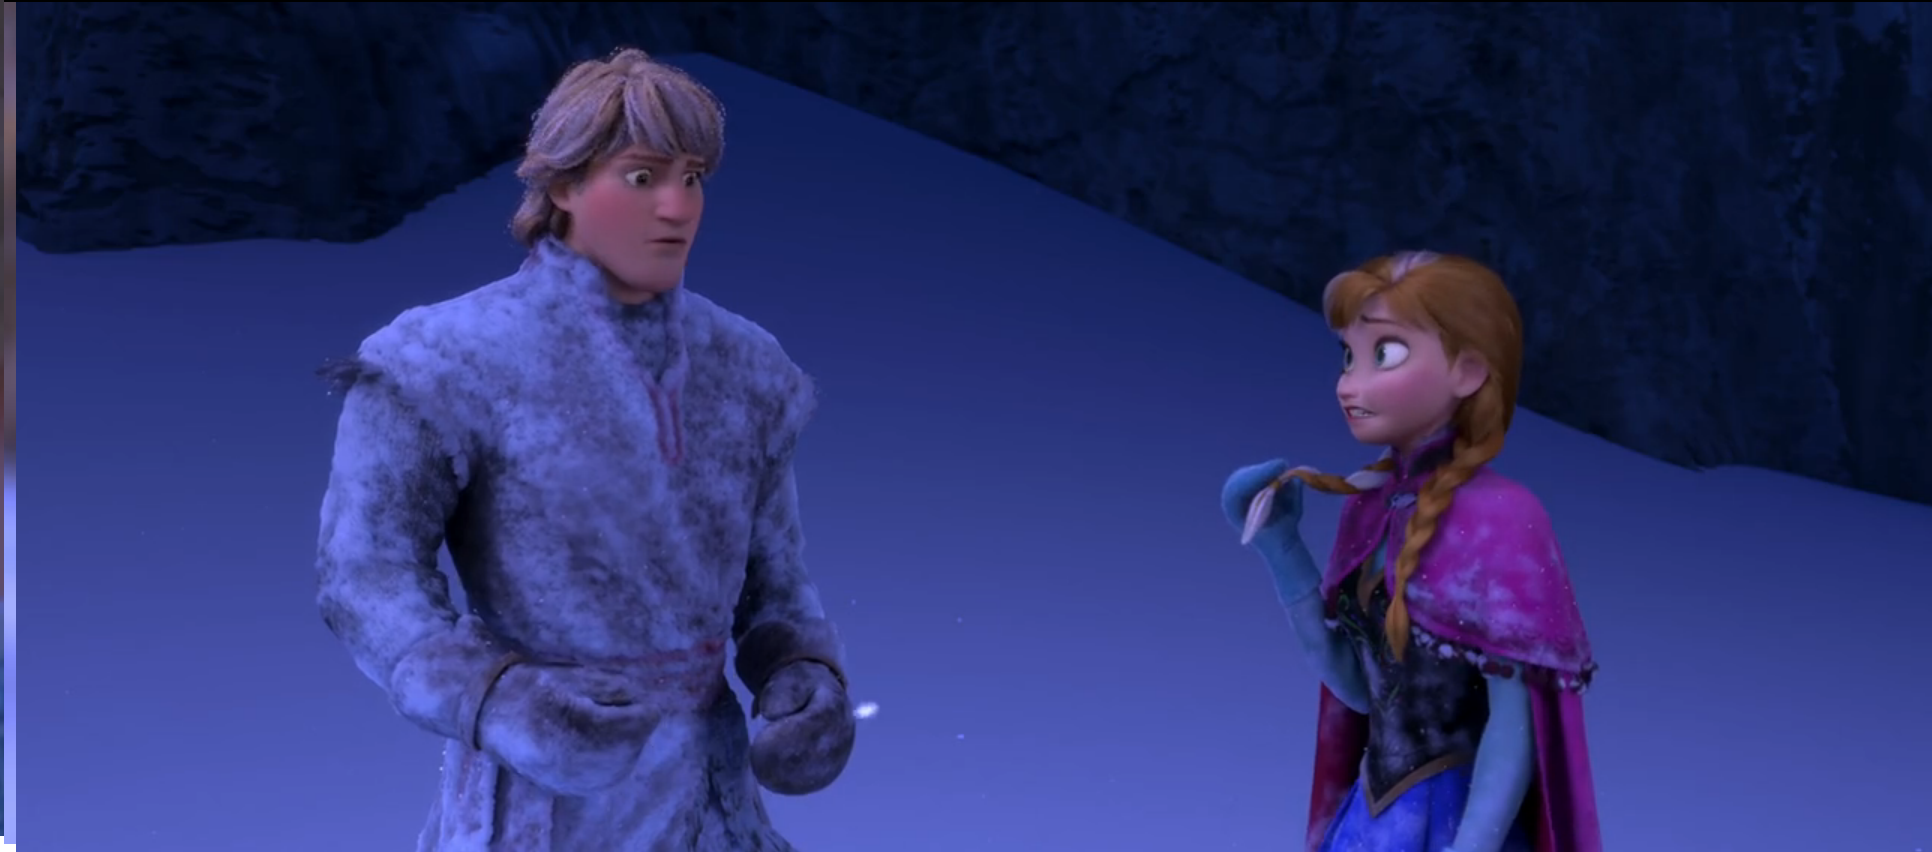 Top 10 quotes from the frozen trailers rotoscopers for more frozen movie quotes check out the frozen quote page on disneyquotes voltagebd Images